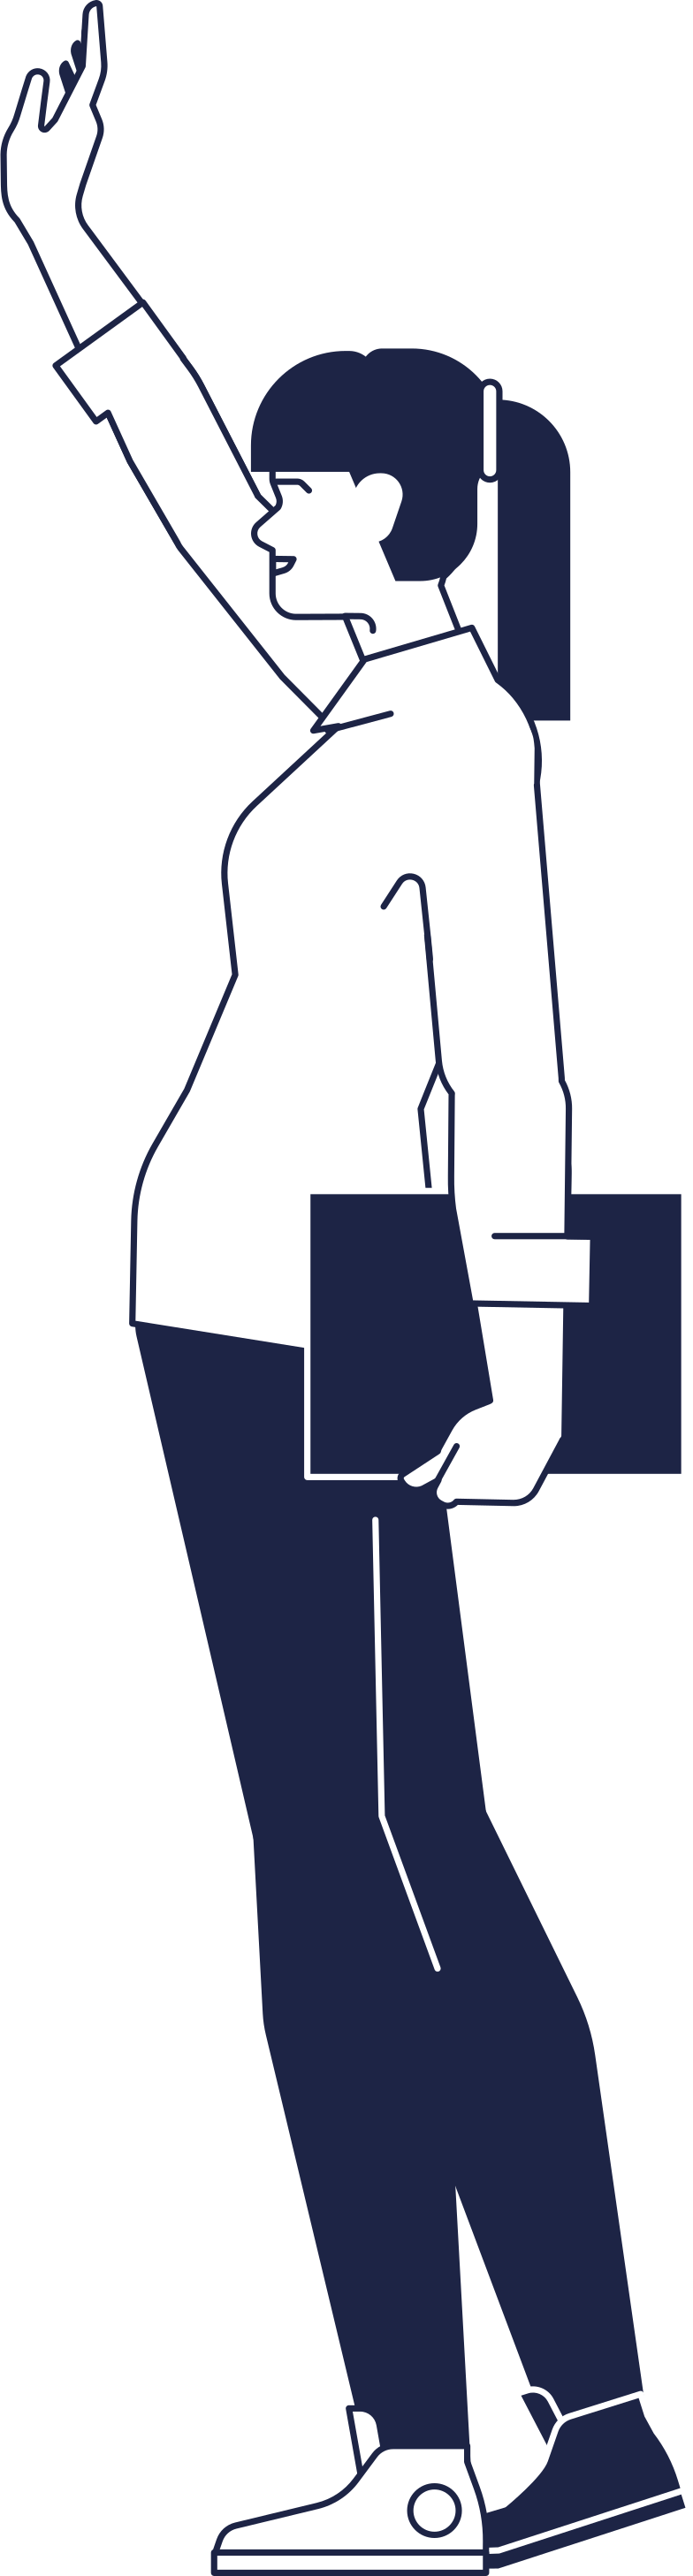 woman welcomes Clipart illustration in PNG, SVG